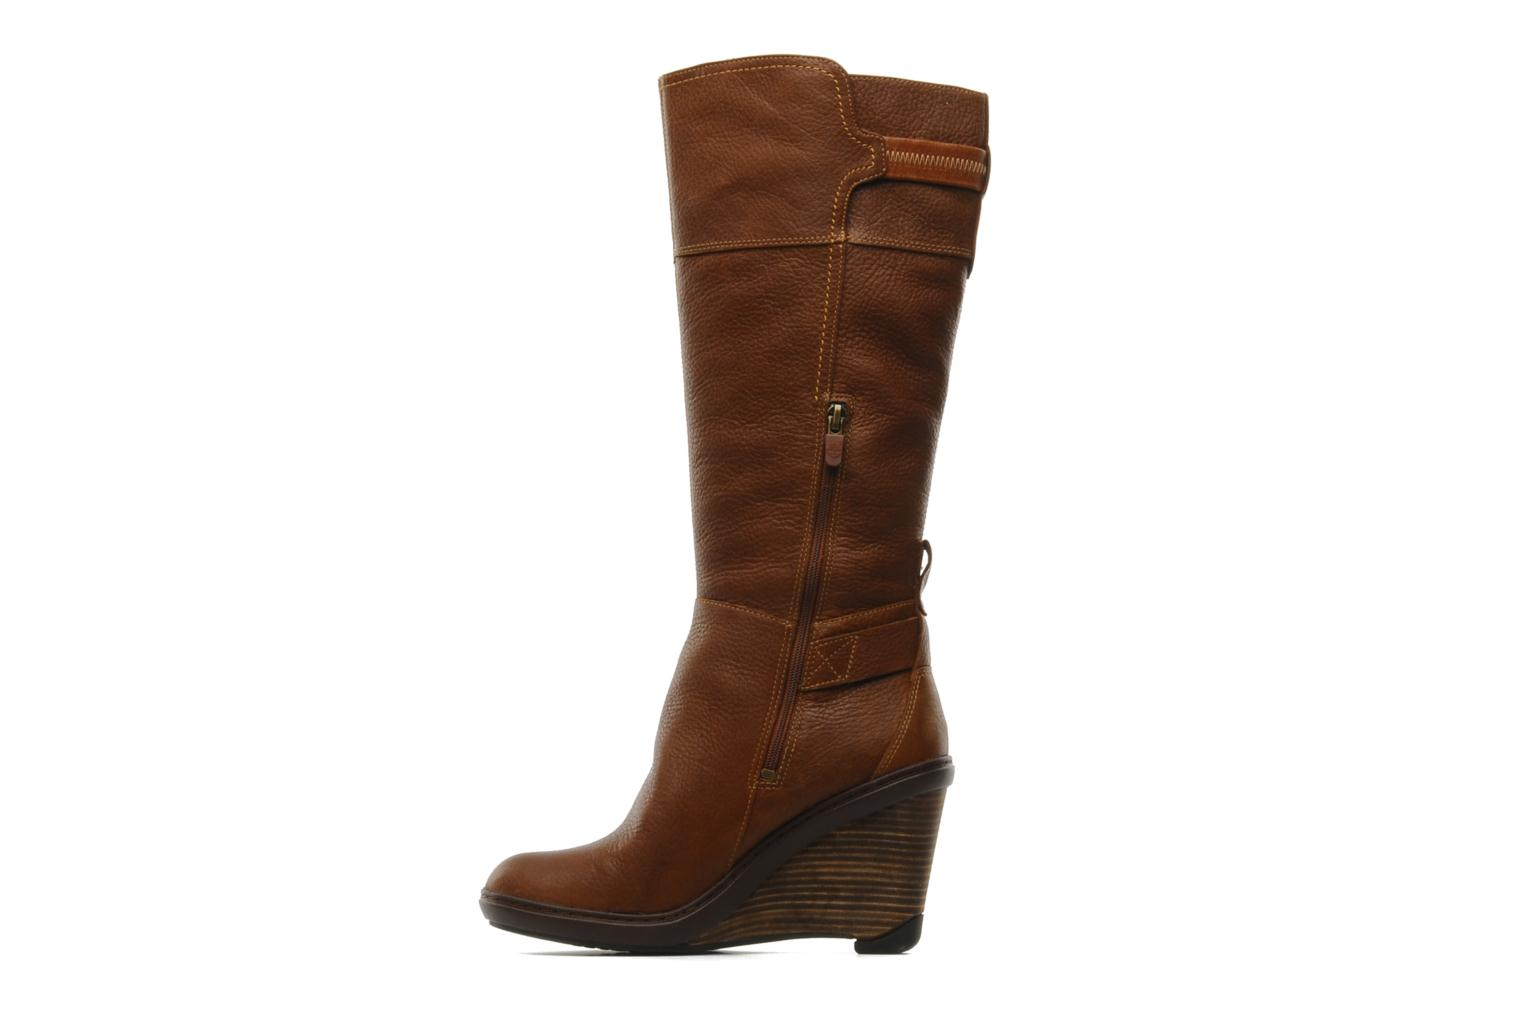 timberland stratham heights wedge boot boots